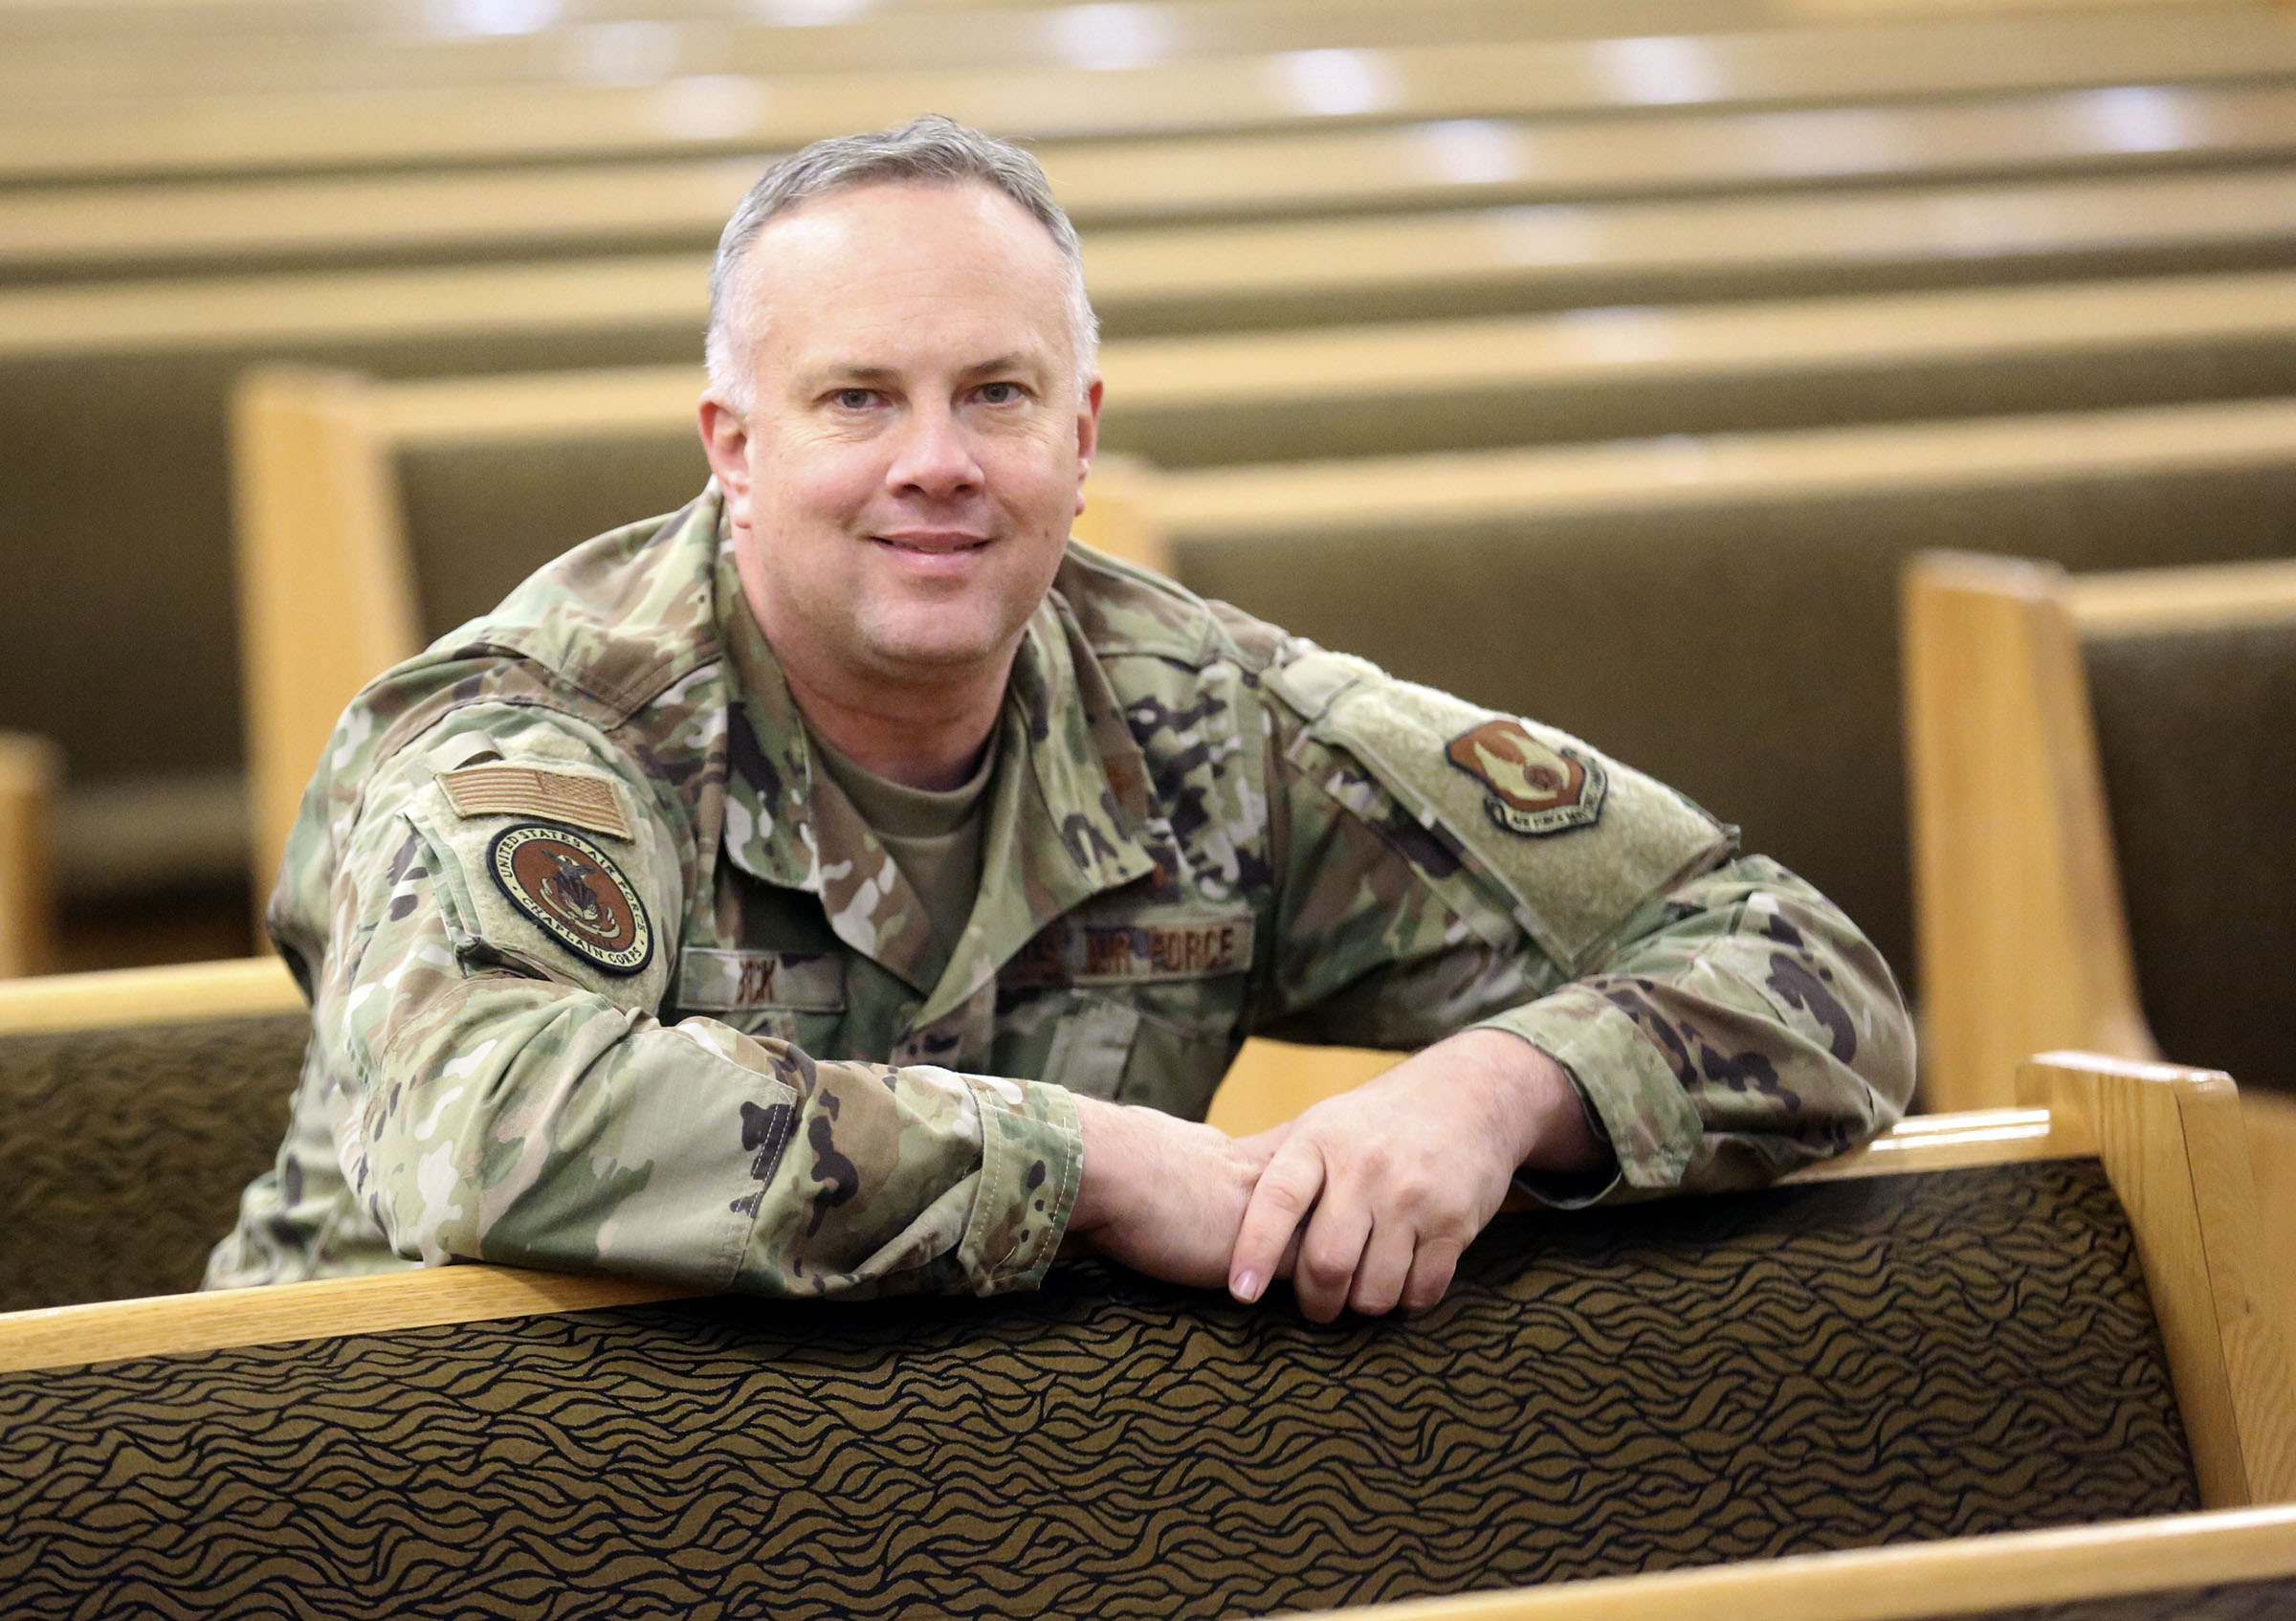 Lt. Col. Zebulon Beck, Hill Air Force Base wing chaplain, poses for a portrait in the base's sanctuary on Monday, Oct. 28, 2019.